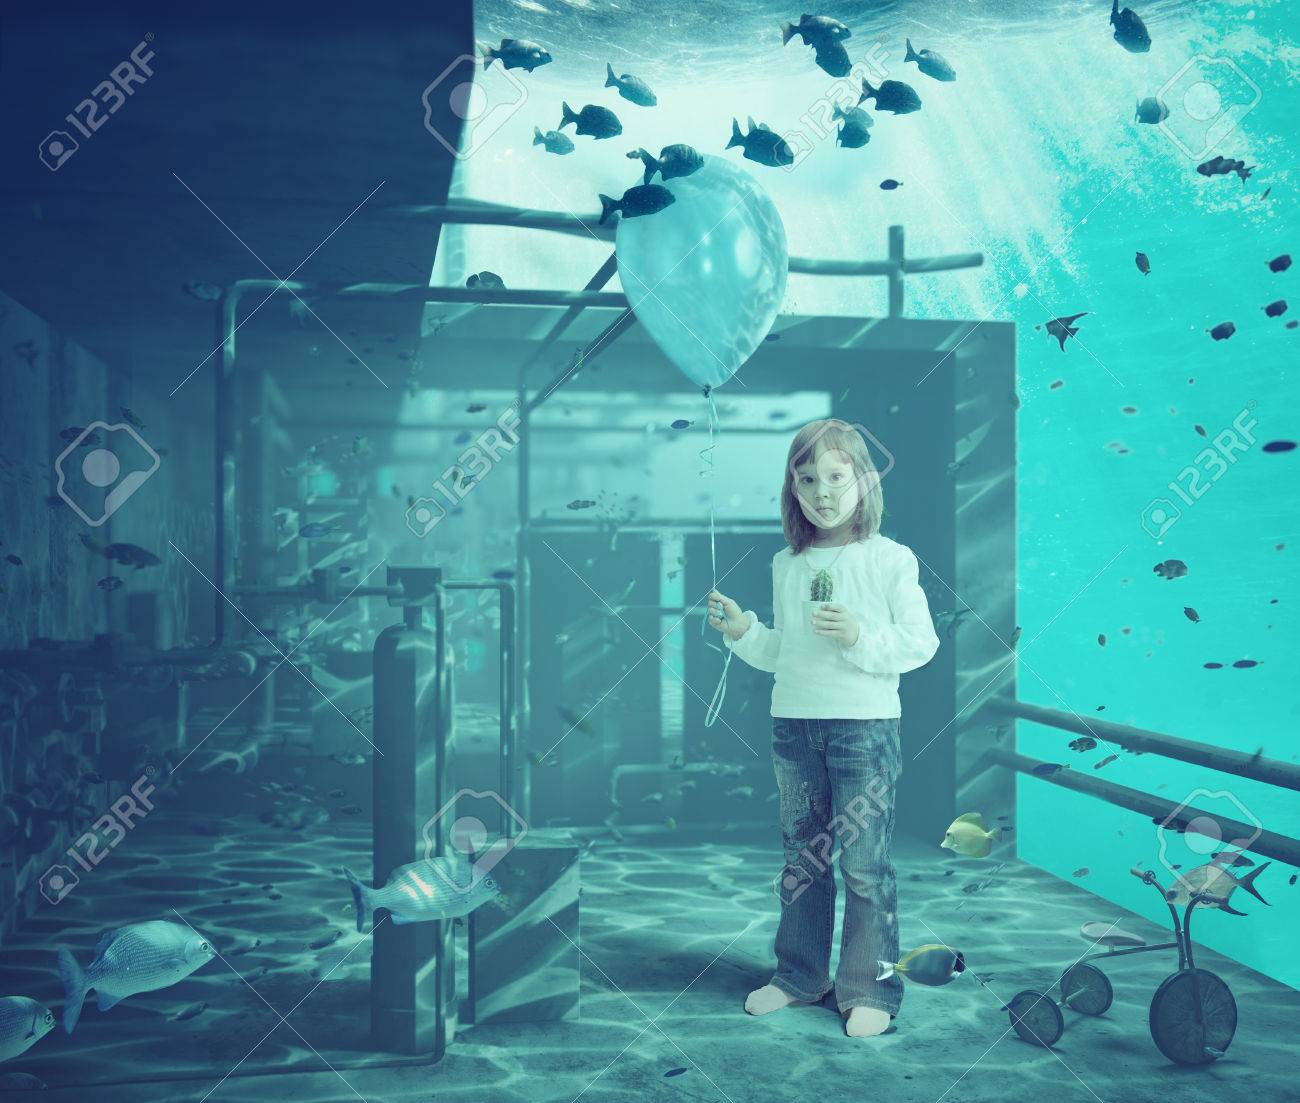 Little girl with ball underwater. CG and photo elements compilation Stock Photo - 27366879